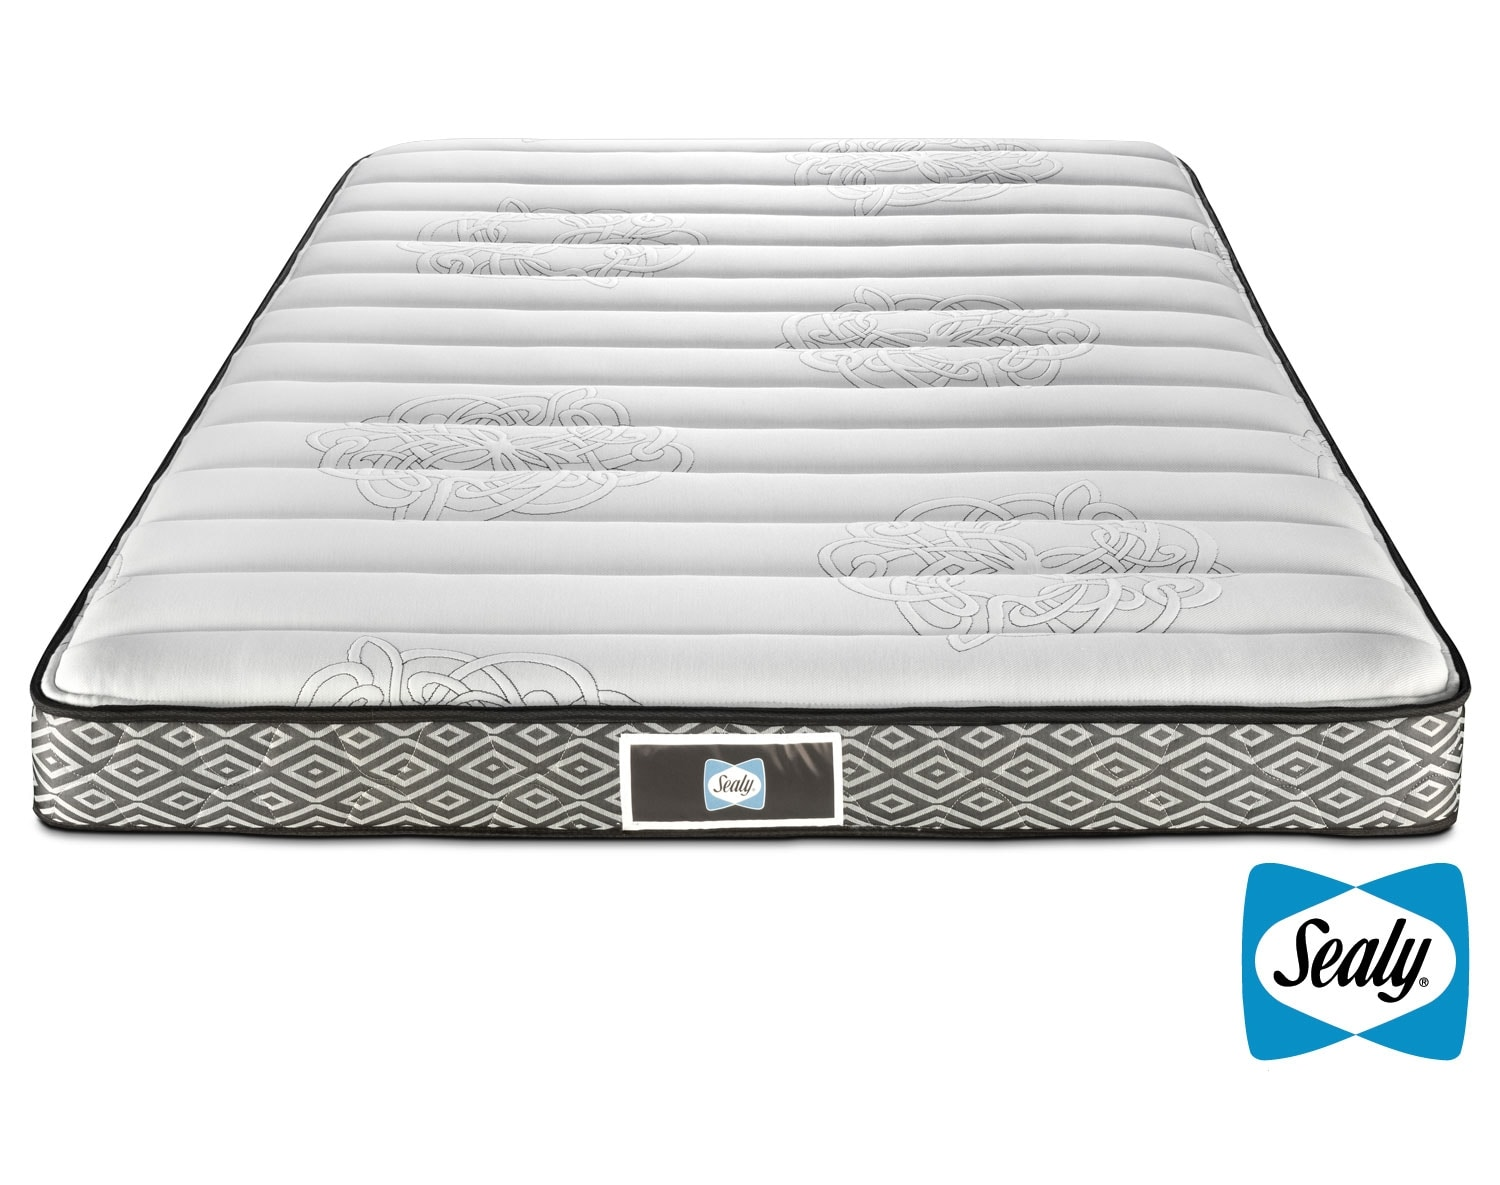 Sealy glacier queen mattress leon 39 s Mattress queen size